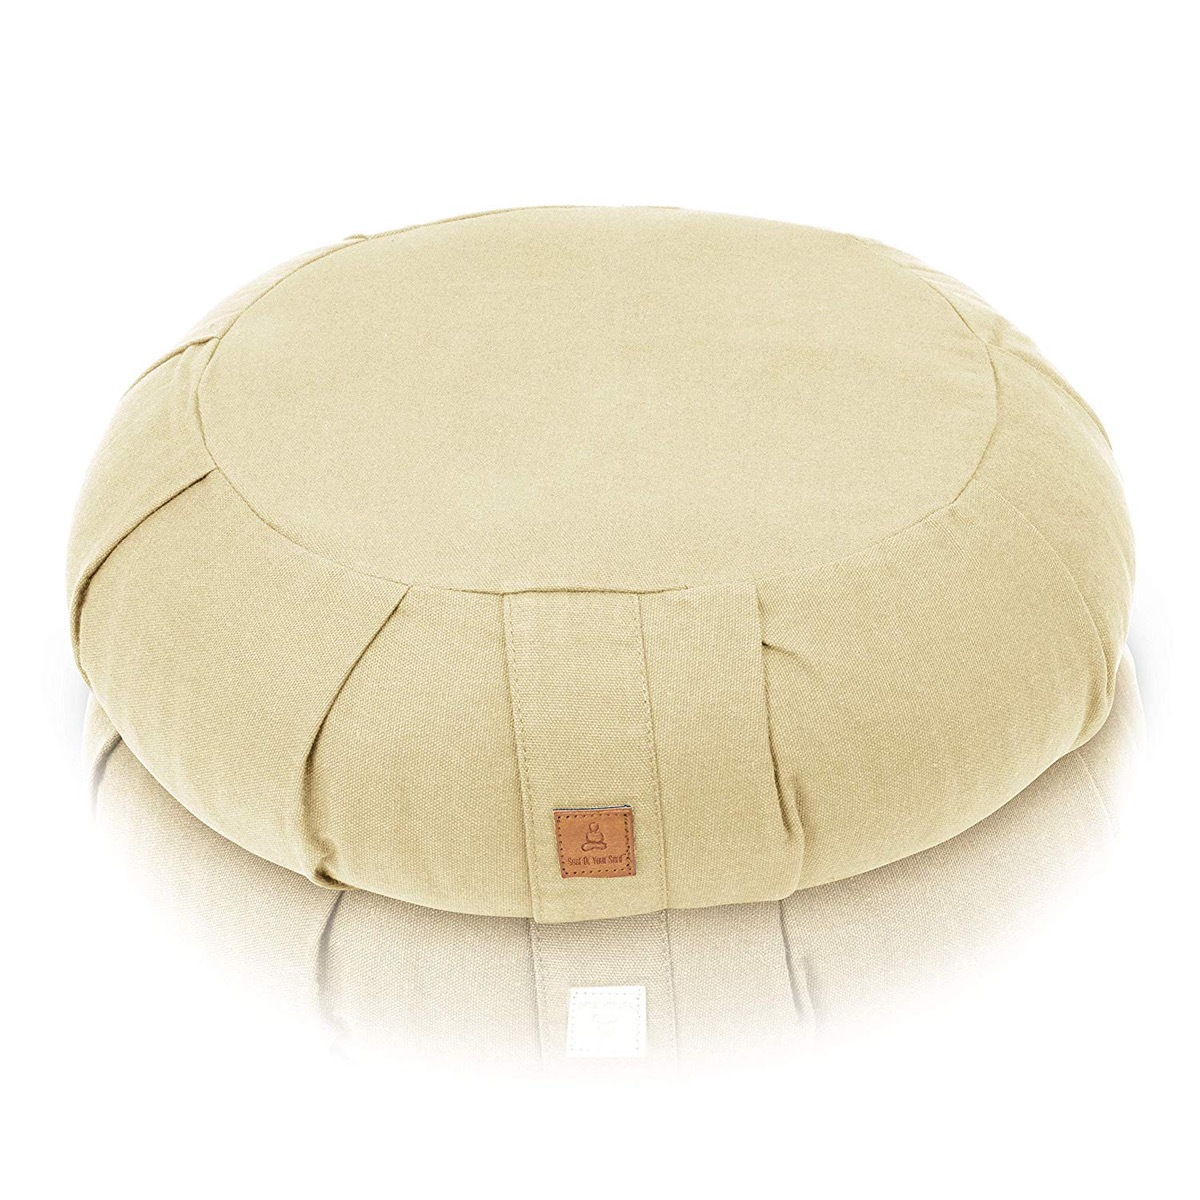 meditation cushion, relaxation gifts